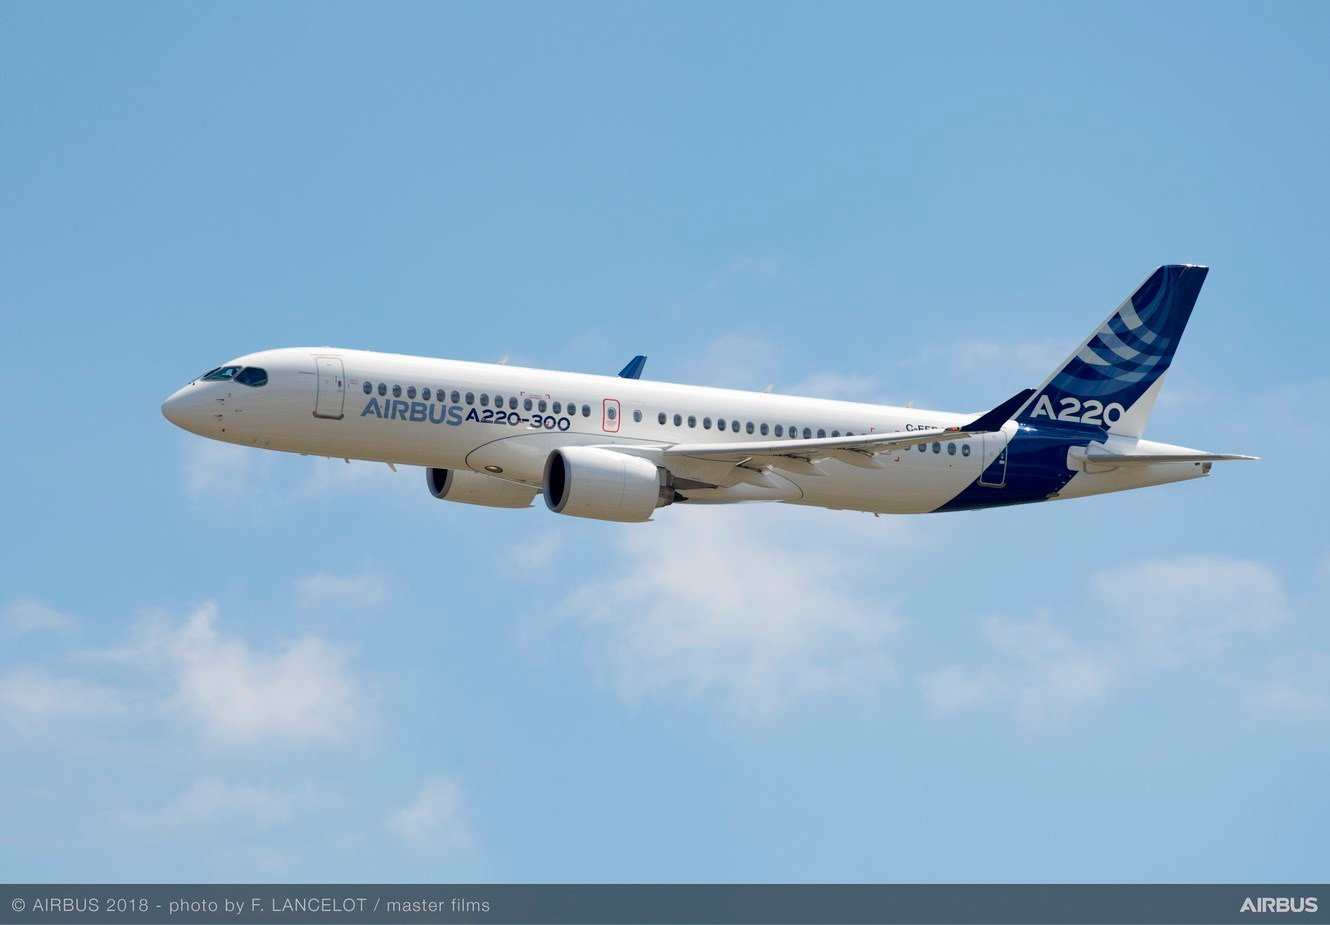 Airbus A220-300 in flight (Photo courtesy Airbus)